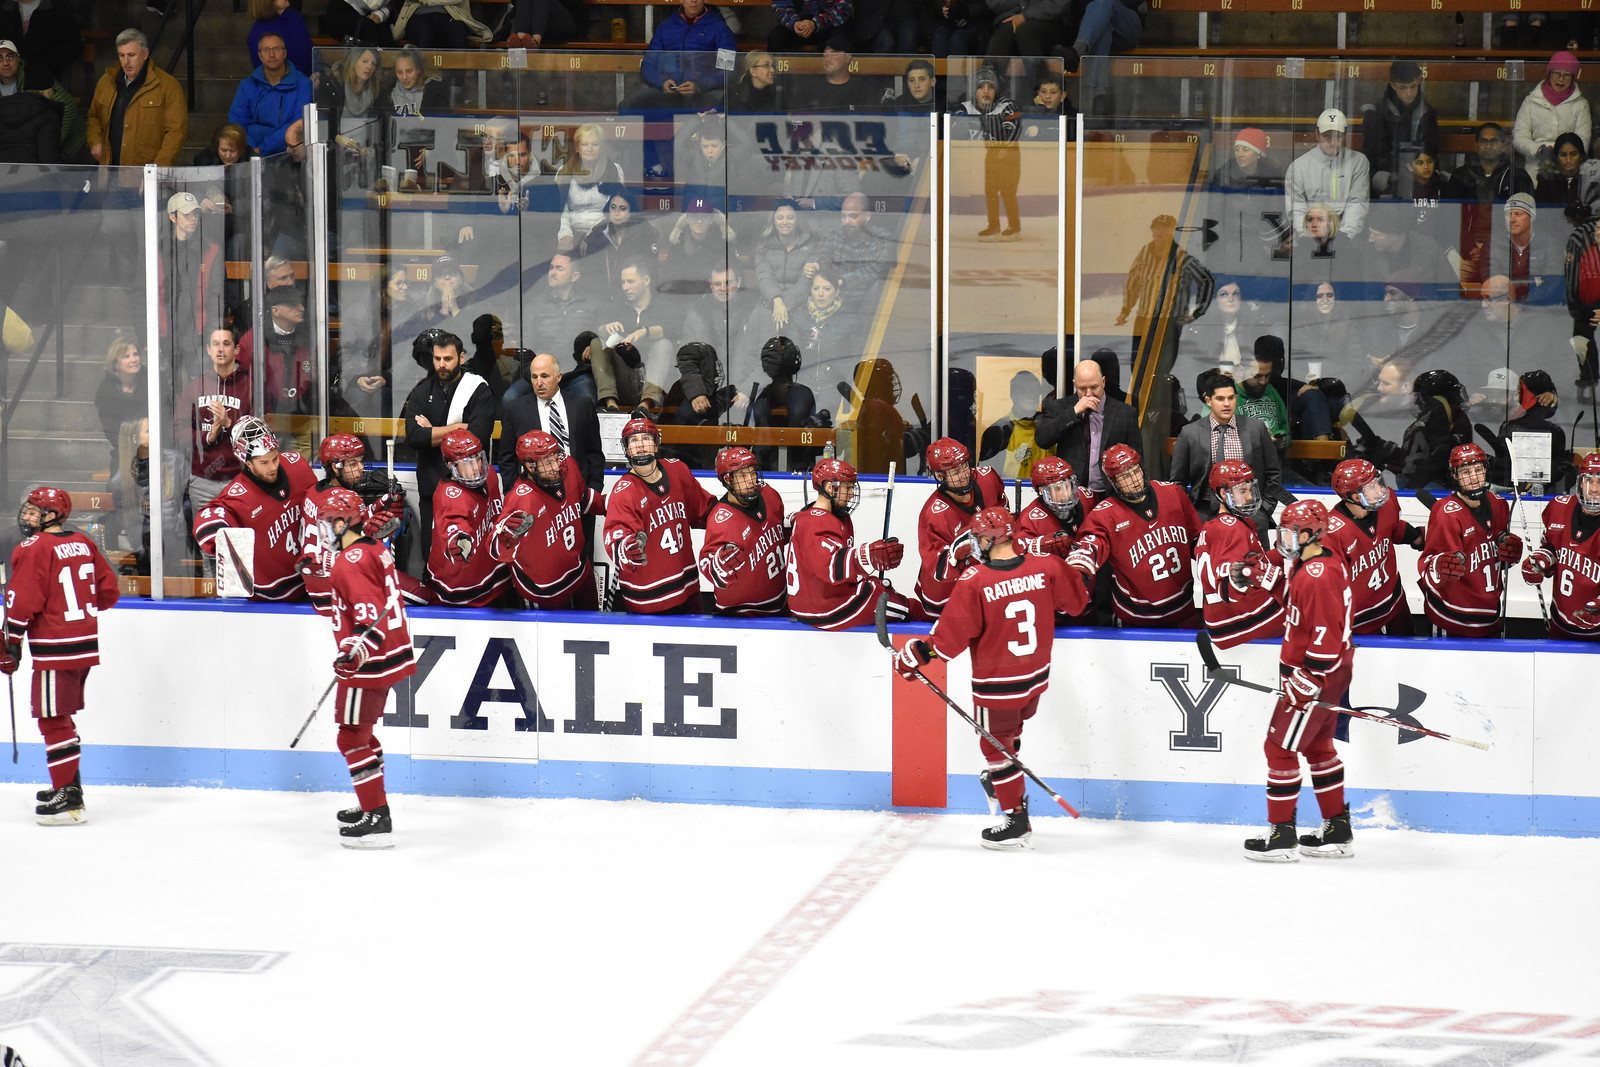 In a mid-November clash, the Crimson handled the Elis to the tune of 6-1. The game, however, was closer than the score would indicate.